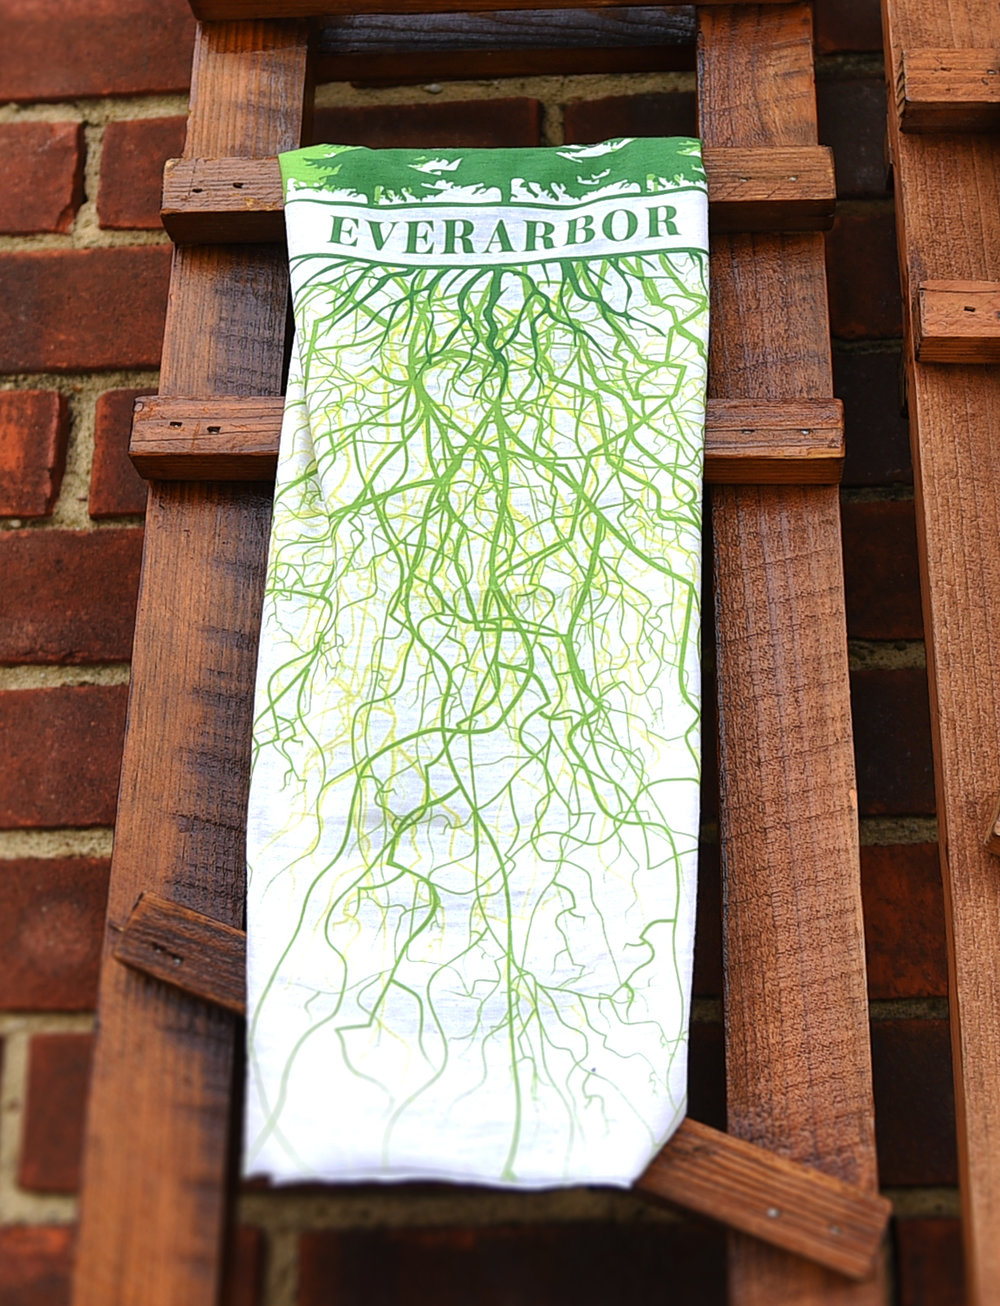 EVERARBOR_BRANDING_2019_KB0027.jpg